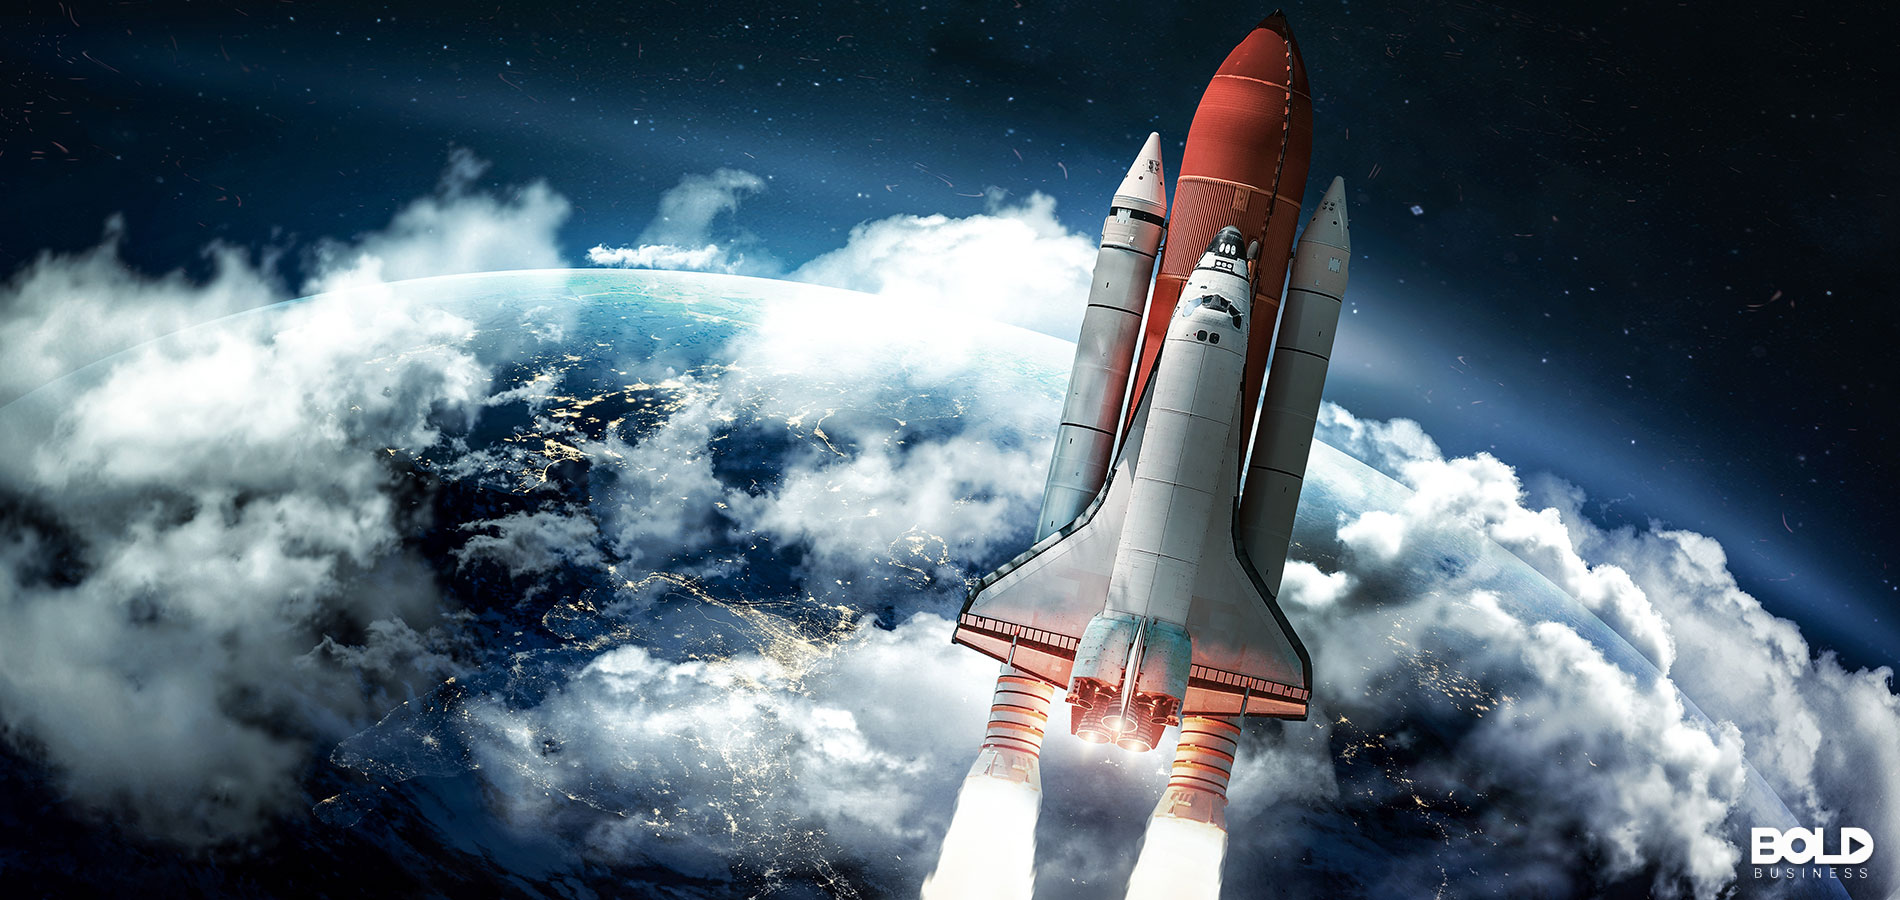 The Space Shuttle taking off into space, where it belongs